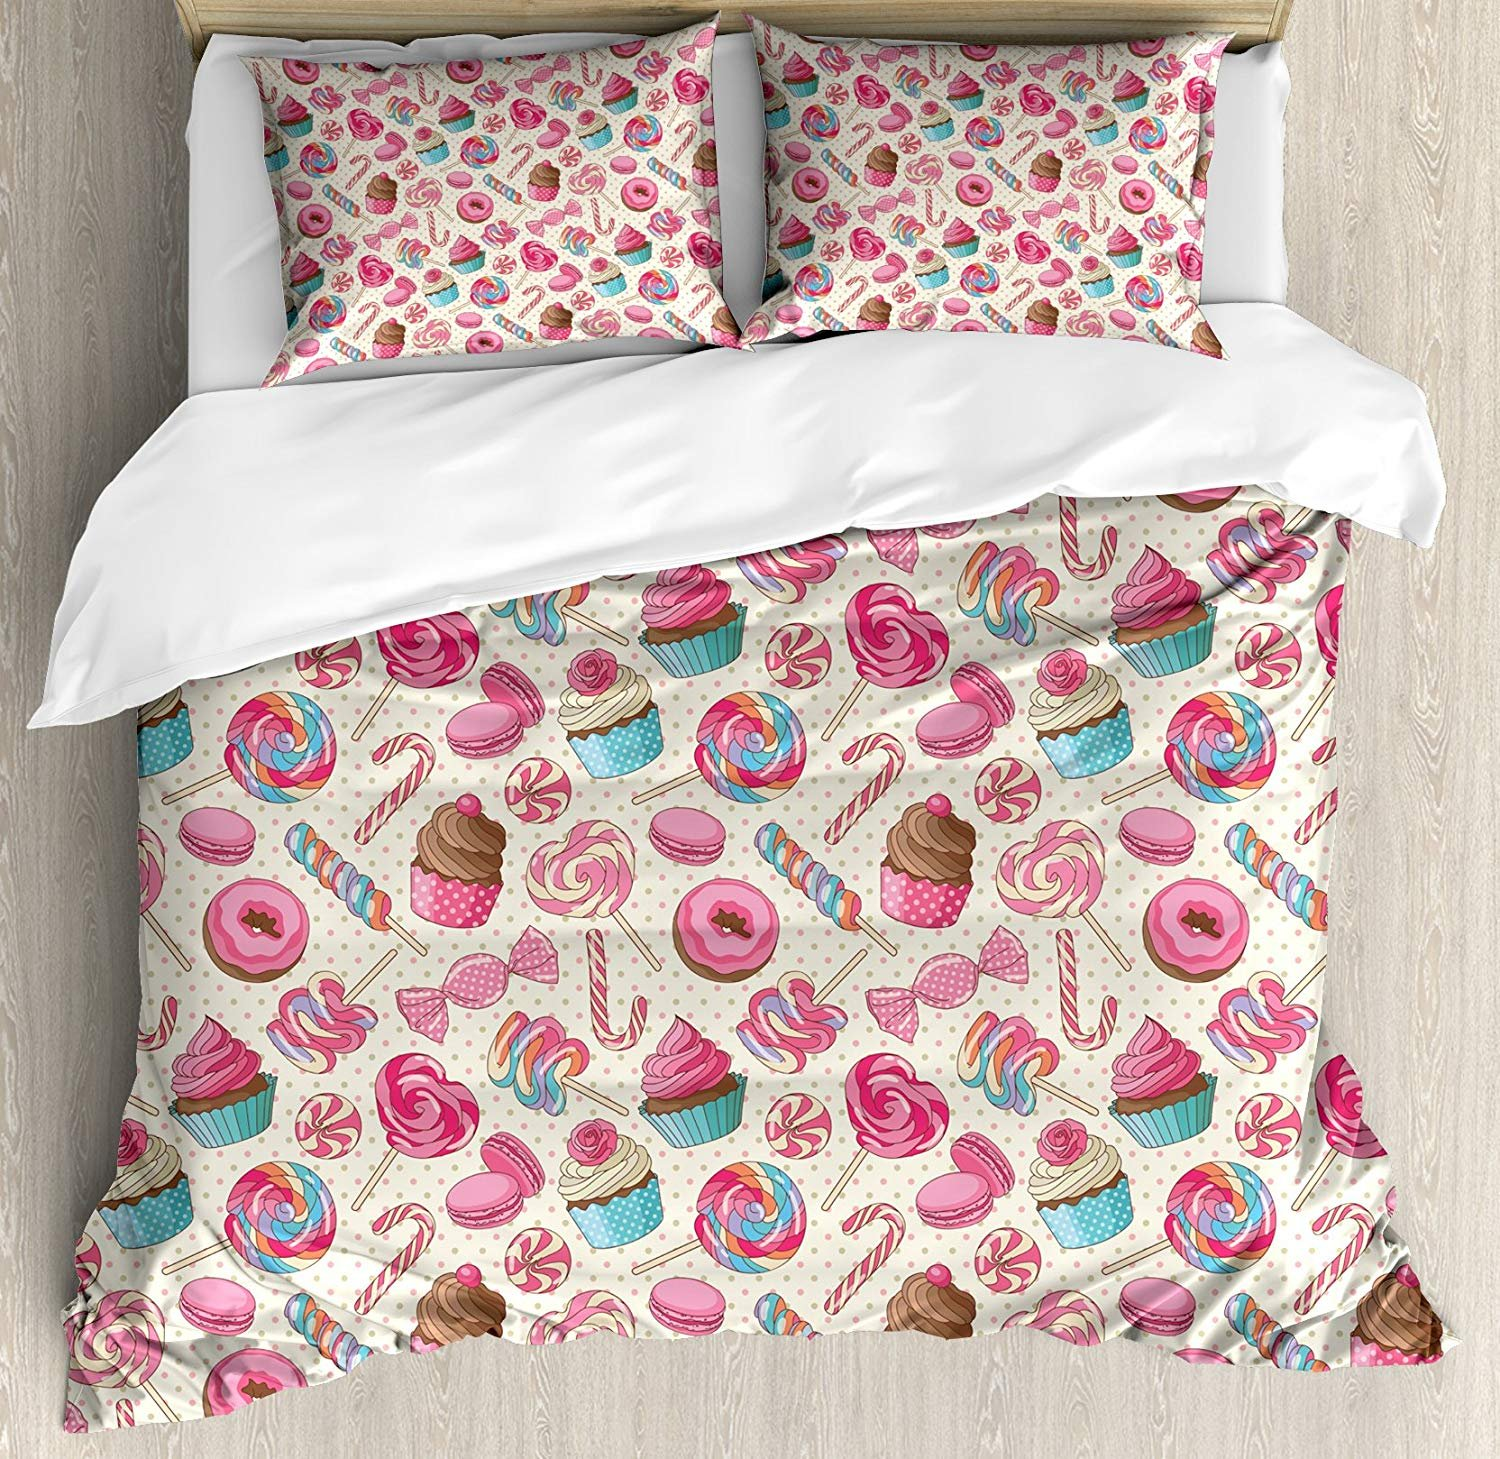 WAZZIT 4 Piece Duvet Cover Set King Candy Cane Yummy Sweet Lollipop Candy Macaroon Cupcake and Donut on Polka Dots Pattern Print Bedding Set with Zipper Closure Matching 2 Pillow Shams by WAZZIT